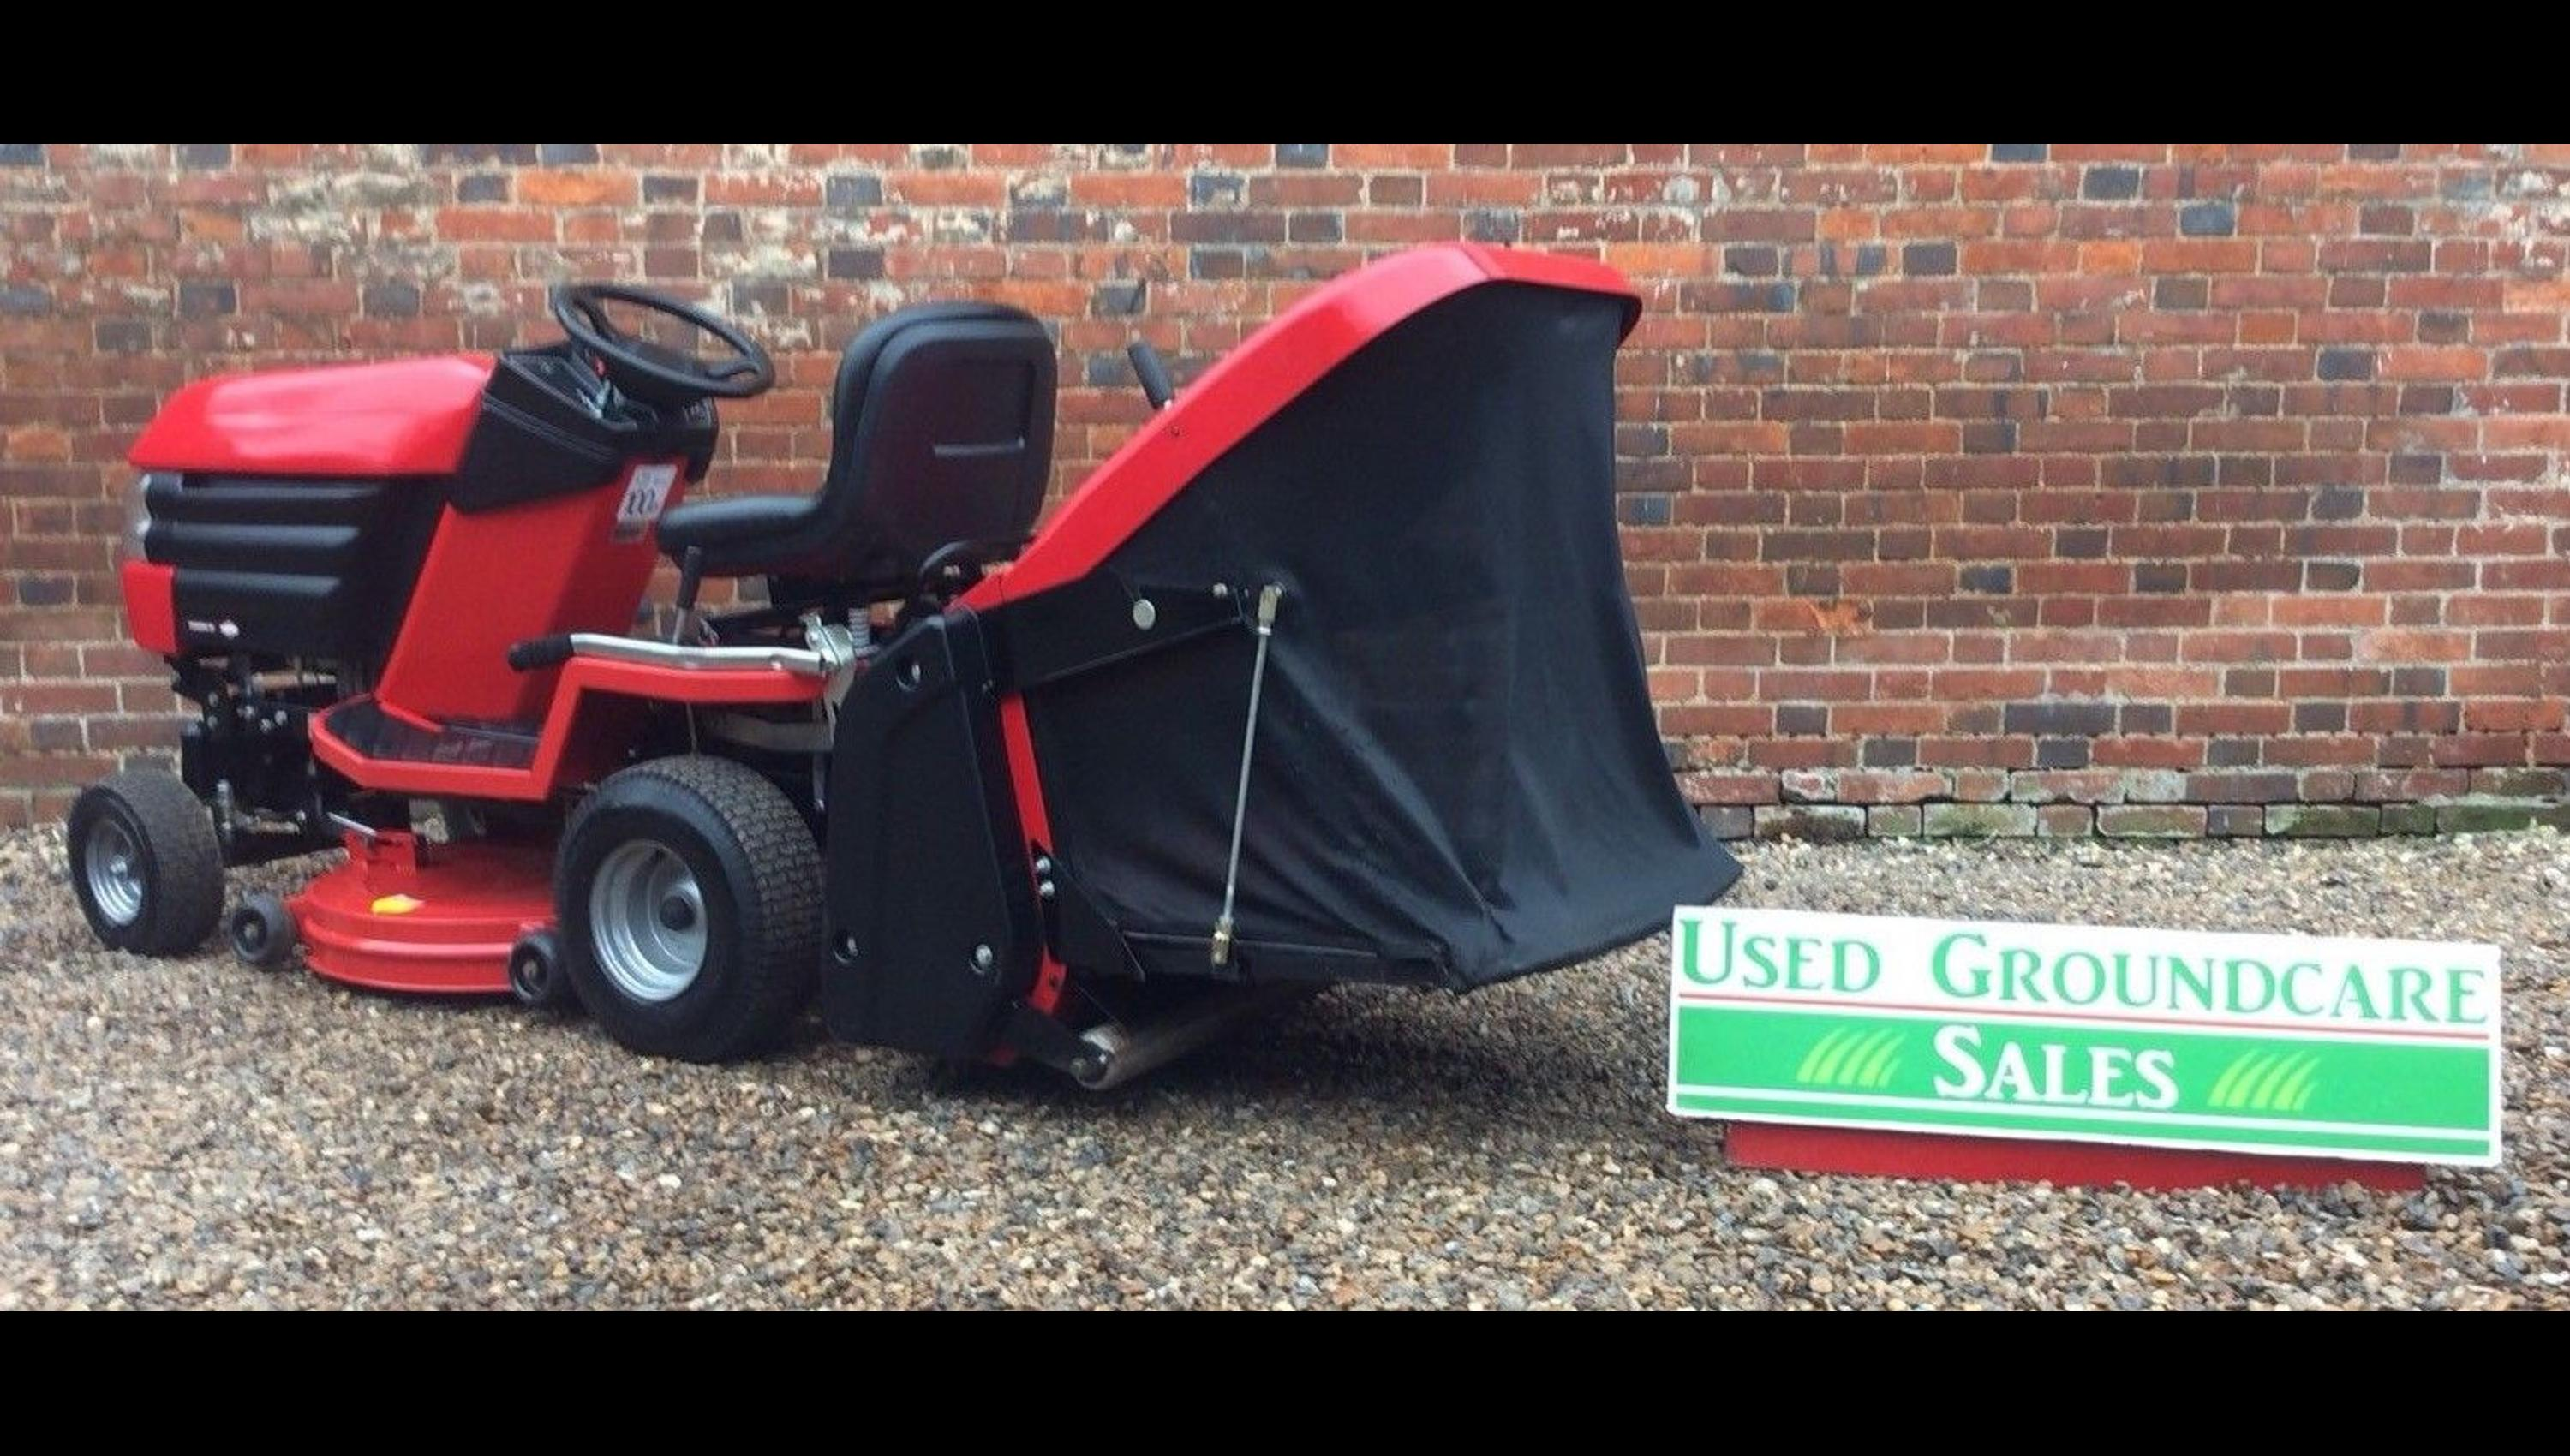 Westwood S150 Ride On Mower In St Albans For 163 1 650 00 For